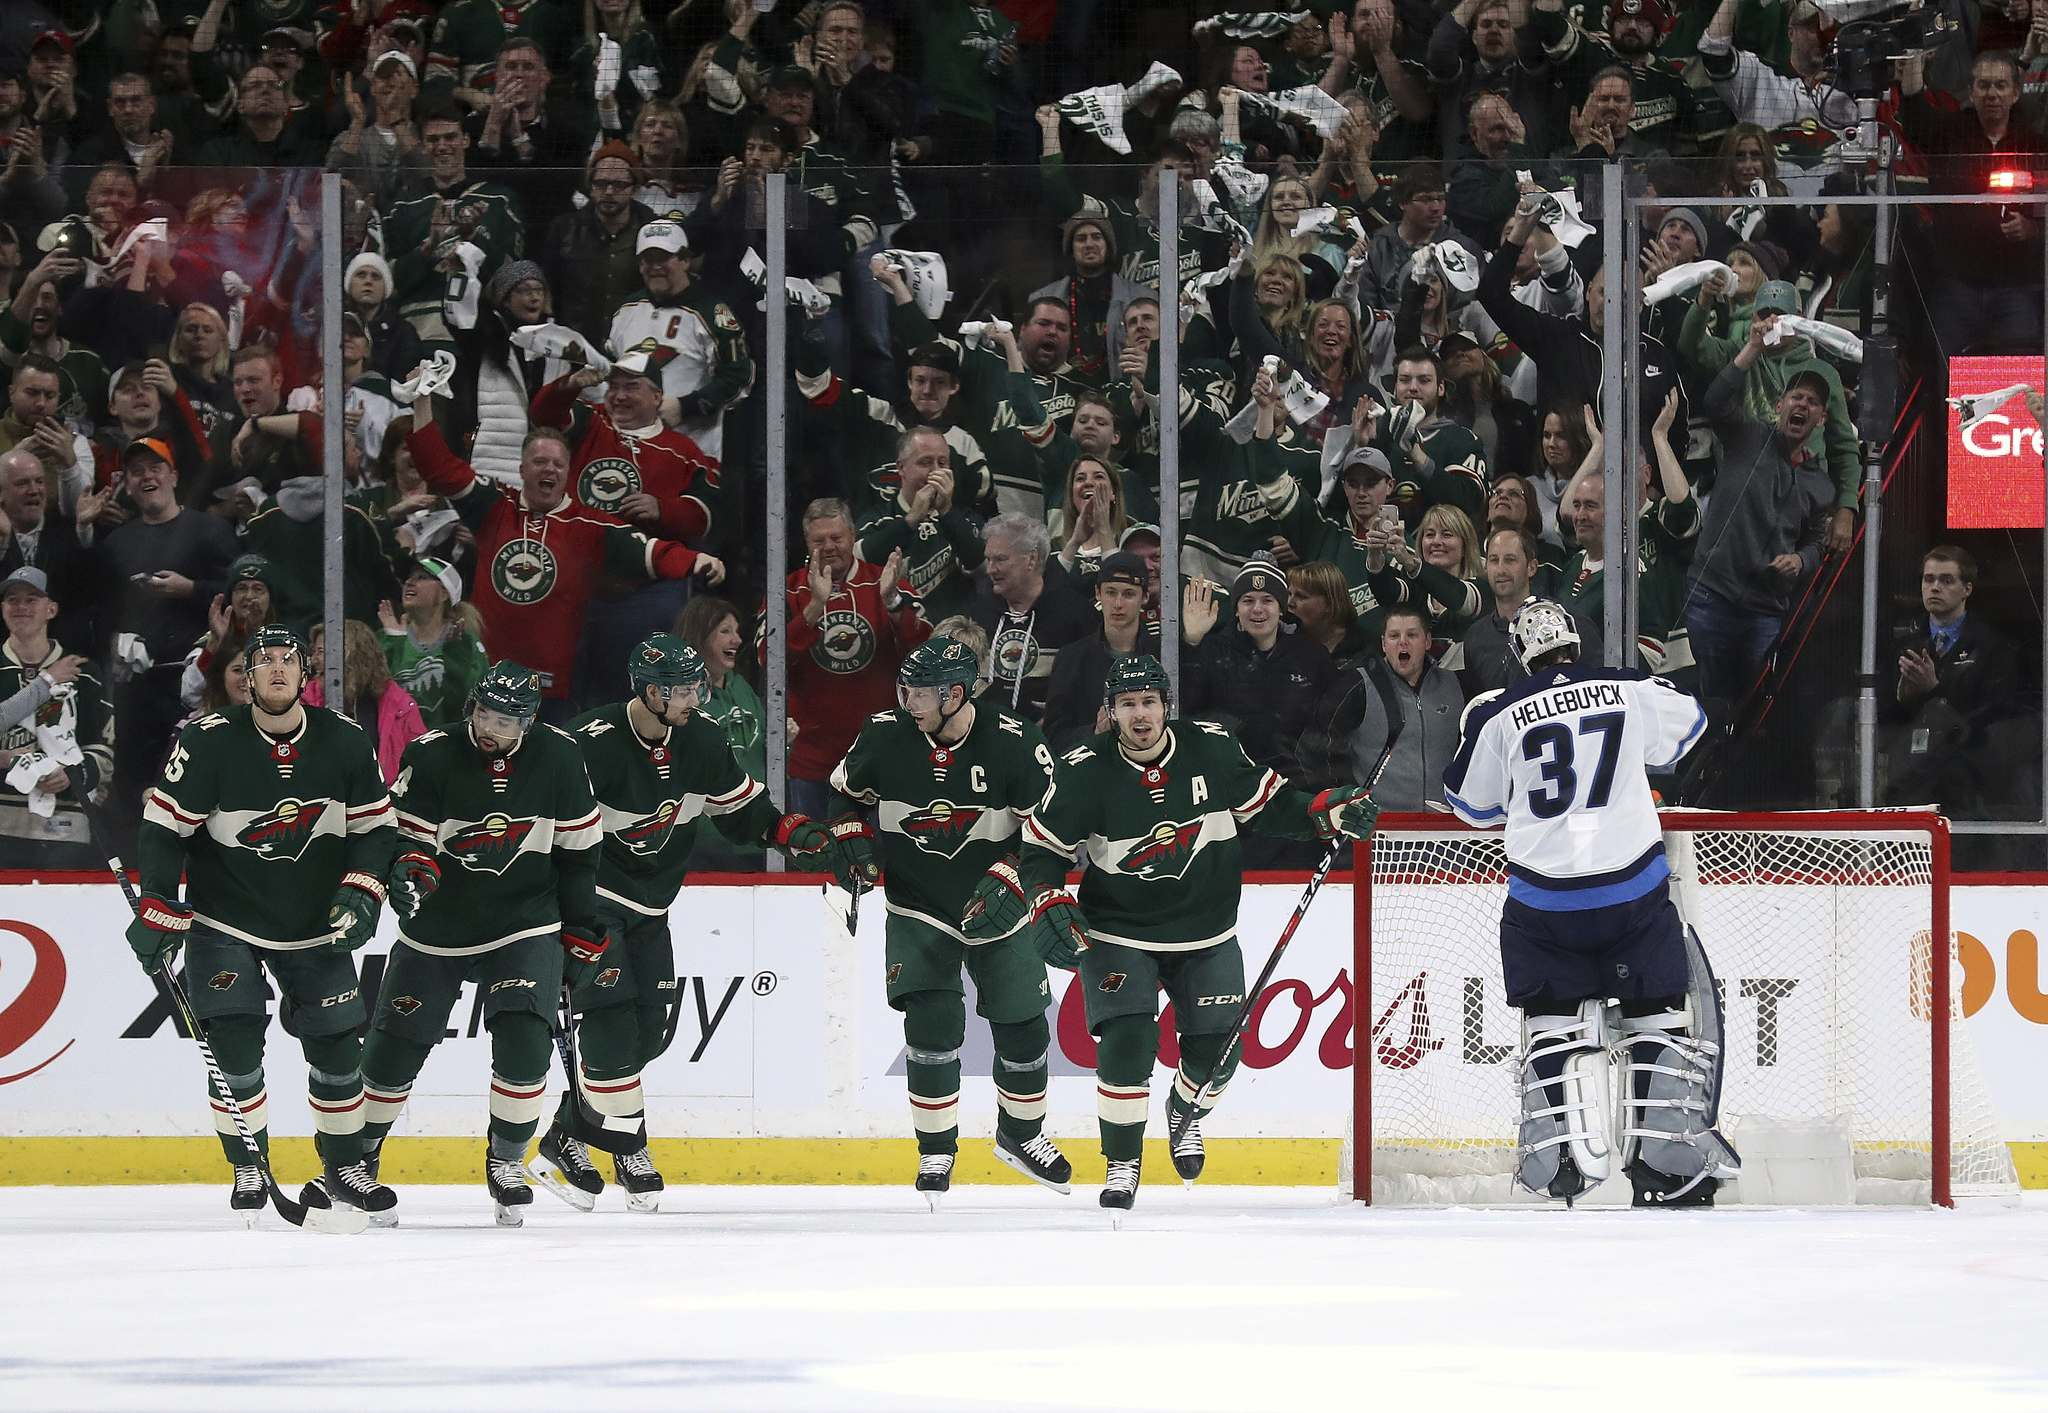 TREVOR HAGAN / WINNIPEG FREE PRESS</p><p>The Minnesota Wild celebrate after Zach Parise (11) scored on Winnipeg Jets&#39; goaltender Connor Hellebuyck (37) during first period NHL playoff hockey action at the Xcel Energy Center in St.Paul, Minnesota, Sunday, April 14, 2018.</p>